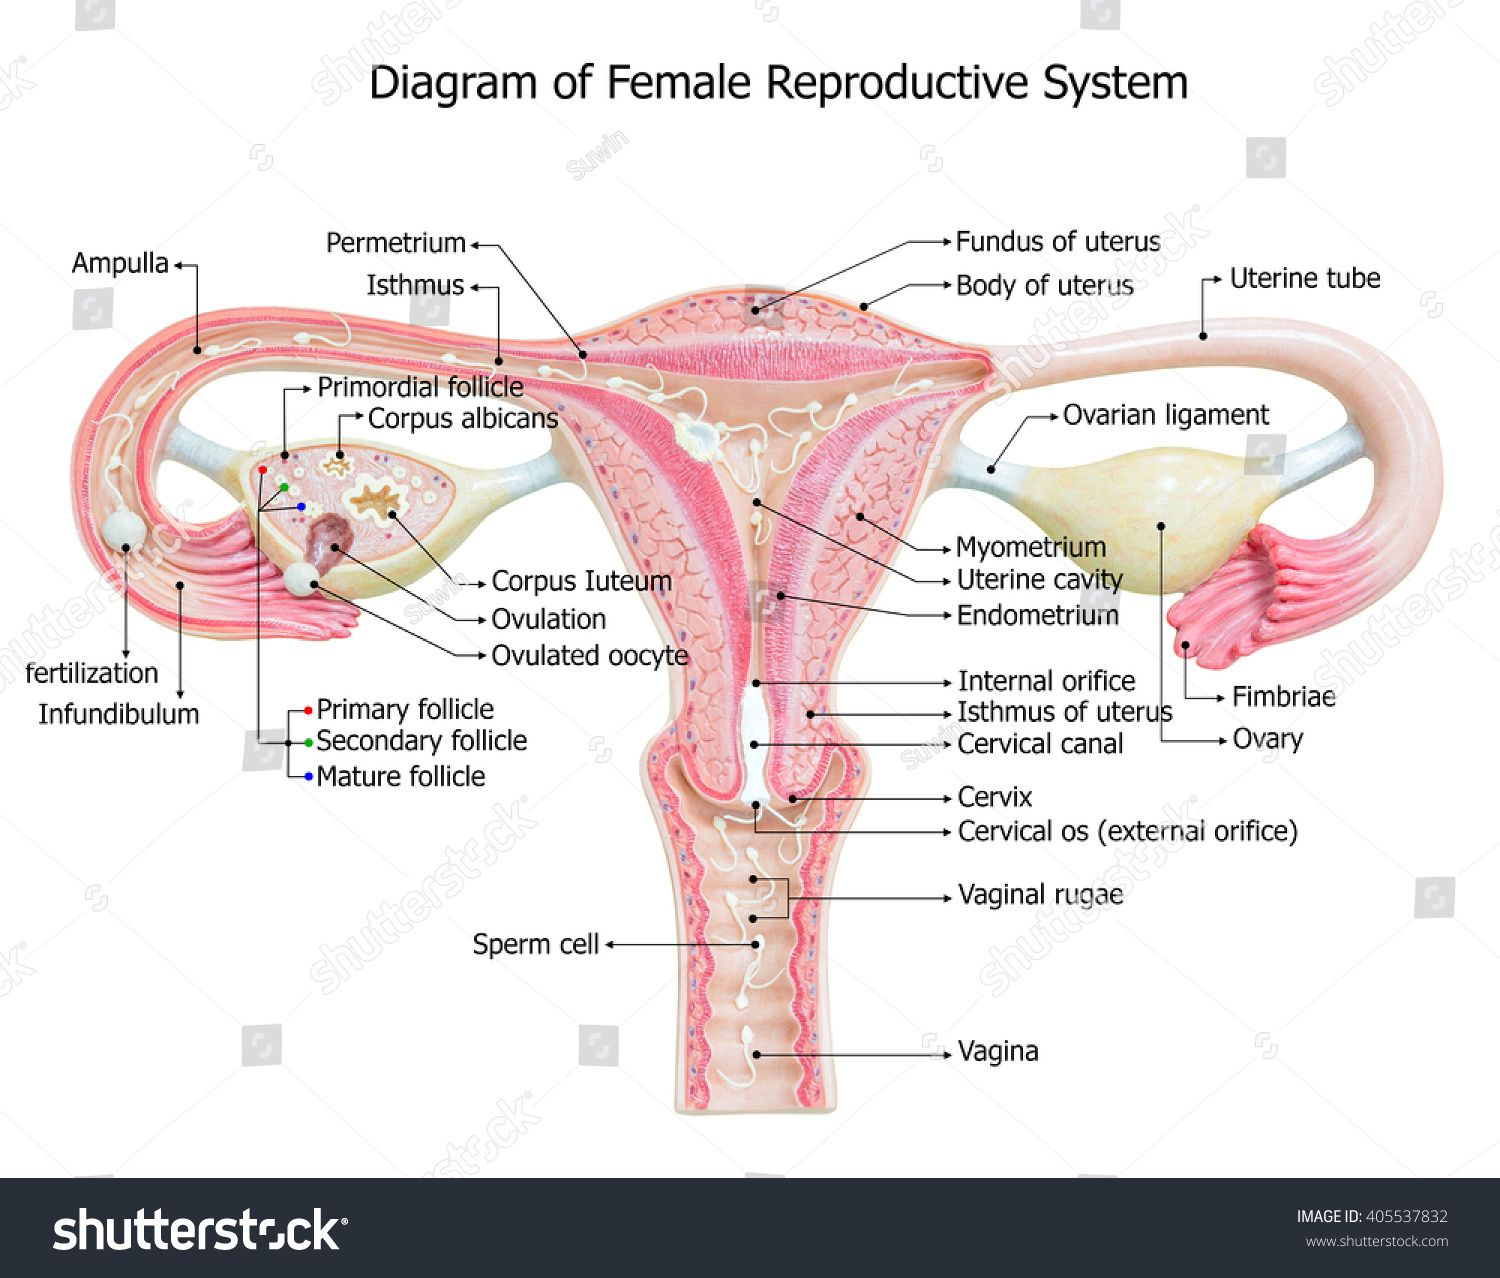 Unlabeled Diagram Of The Female Reproductive System Front View Simple Female Reproductive System Anatomy Female Reproductive System Reproductive System Project